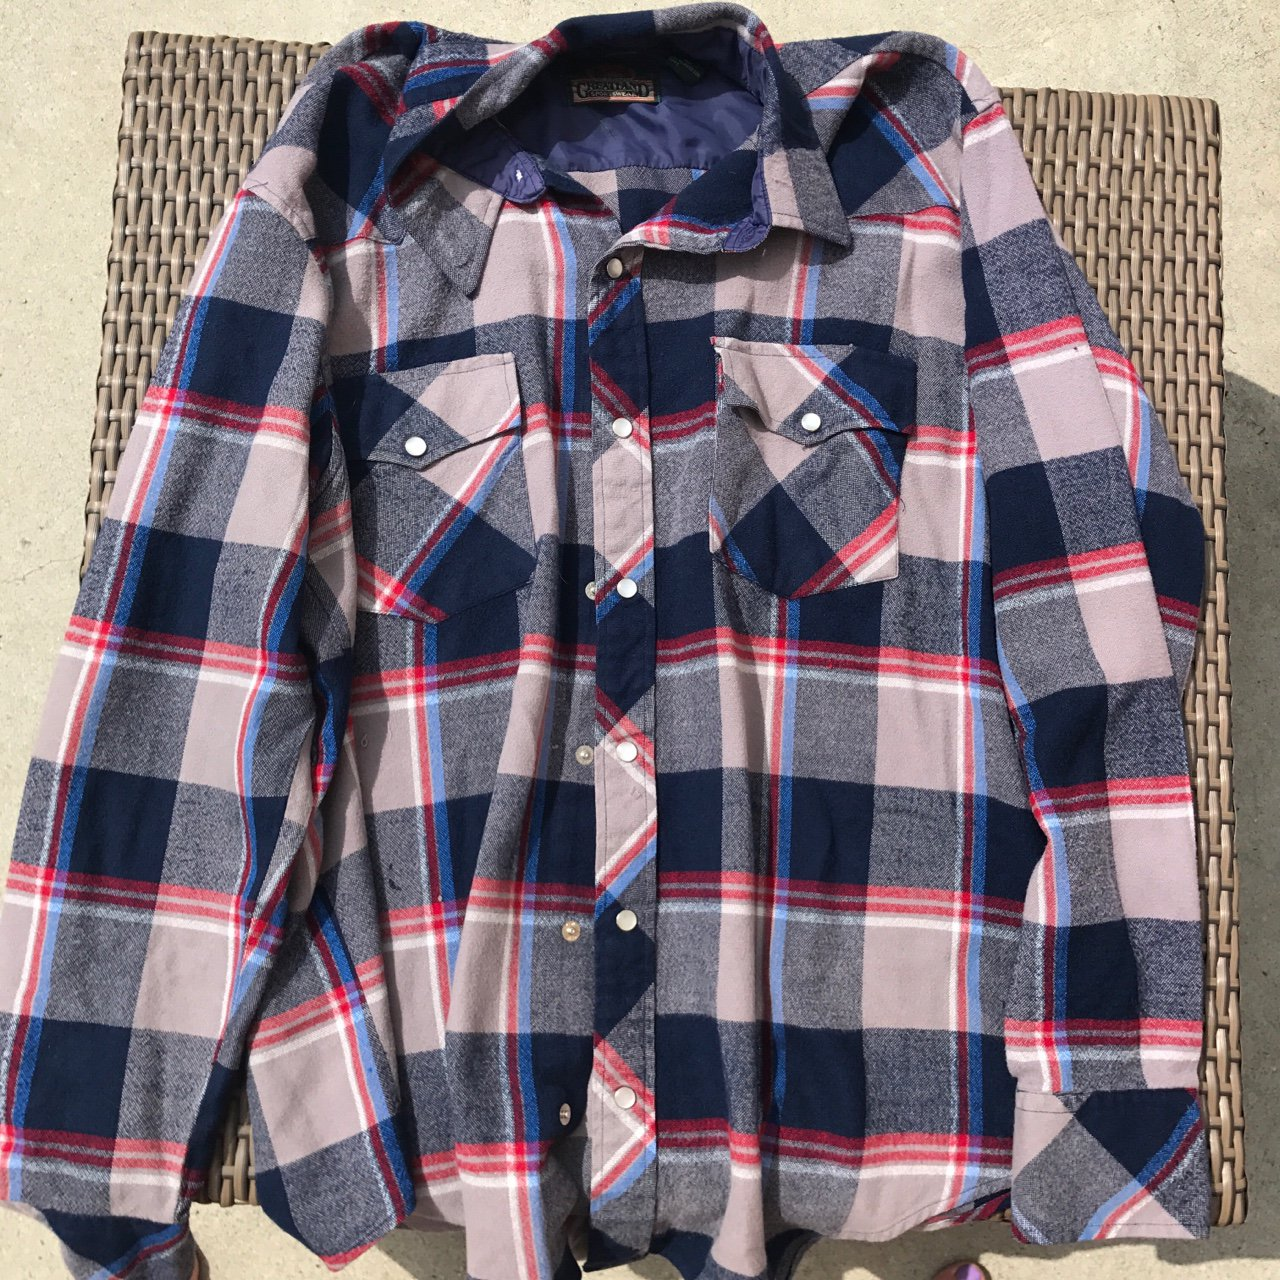 58a04810ec7e @rawrkookie. 2 years ago. Los Angeles, United States. Grey, blue & red  accented men's button down flannel